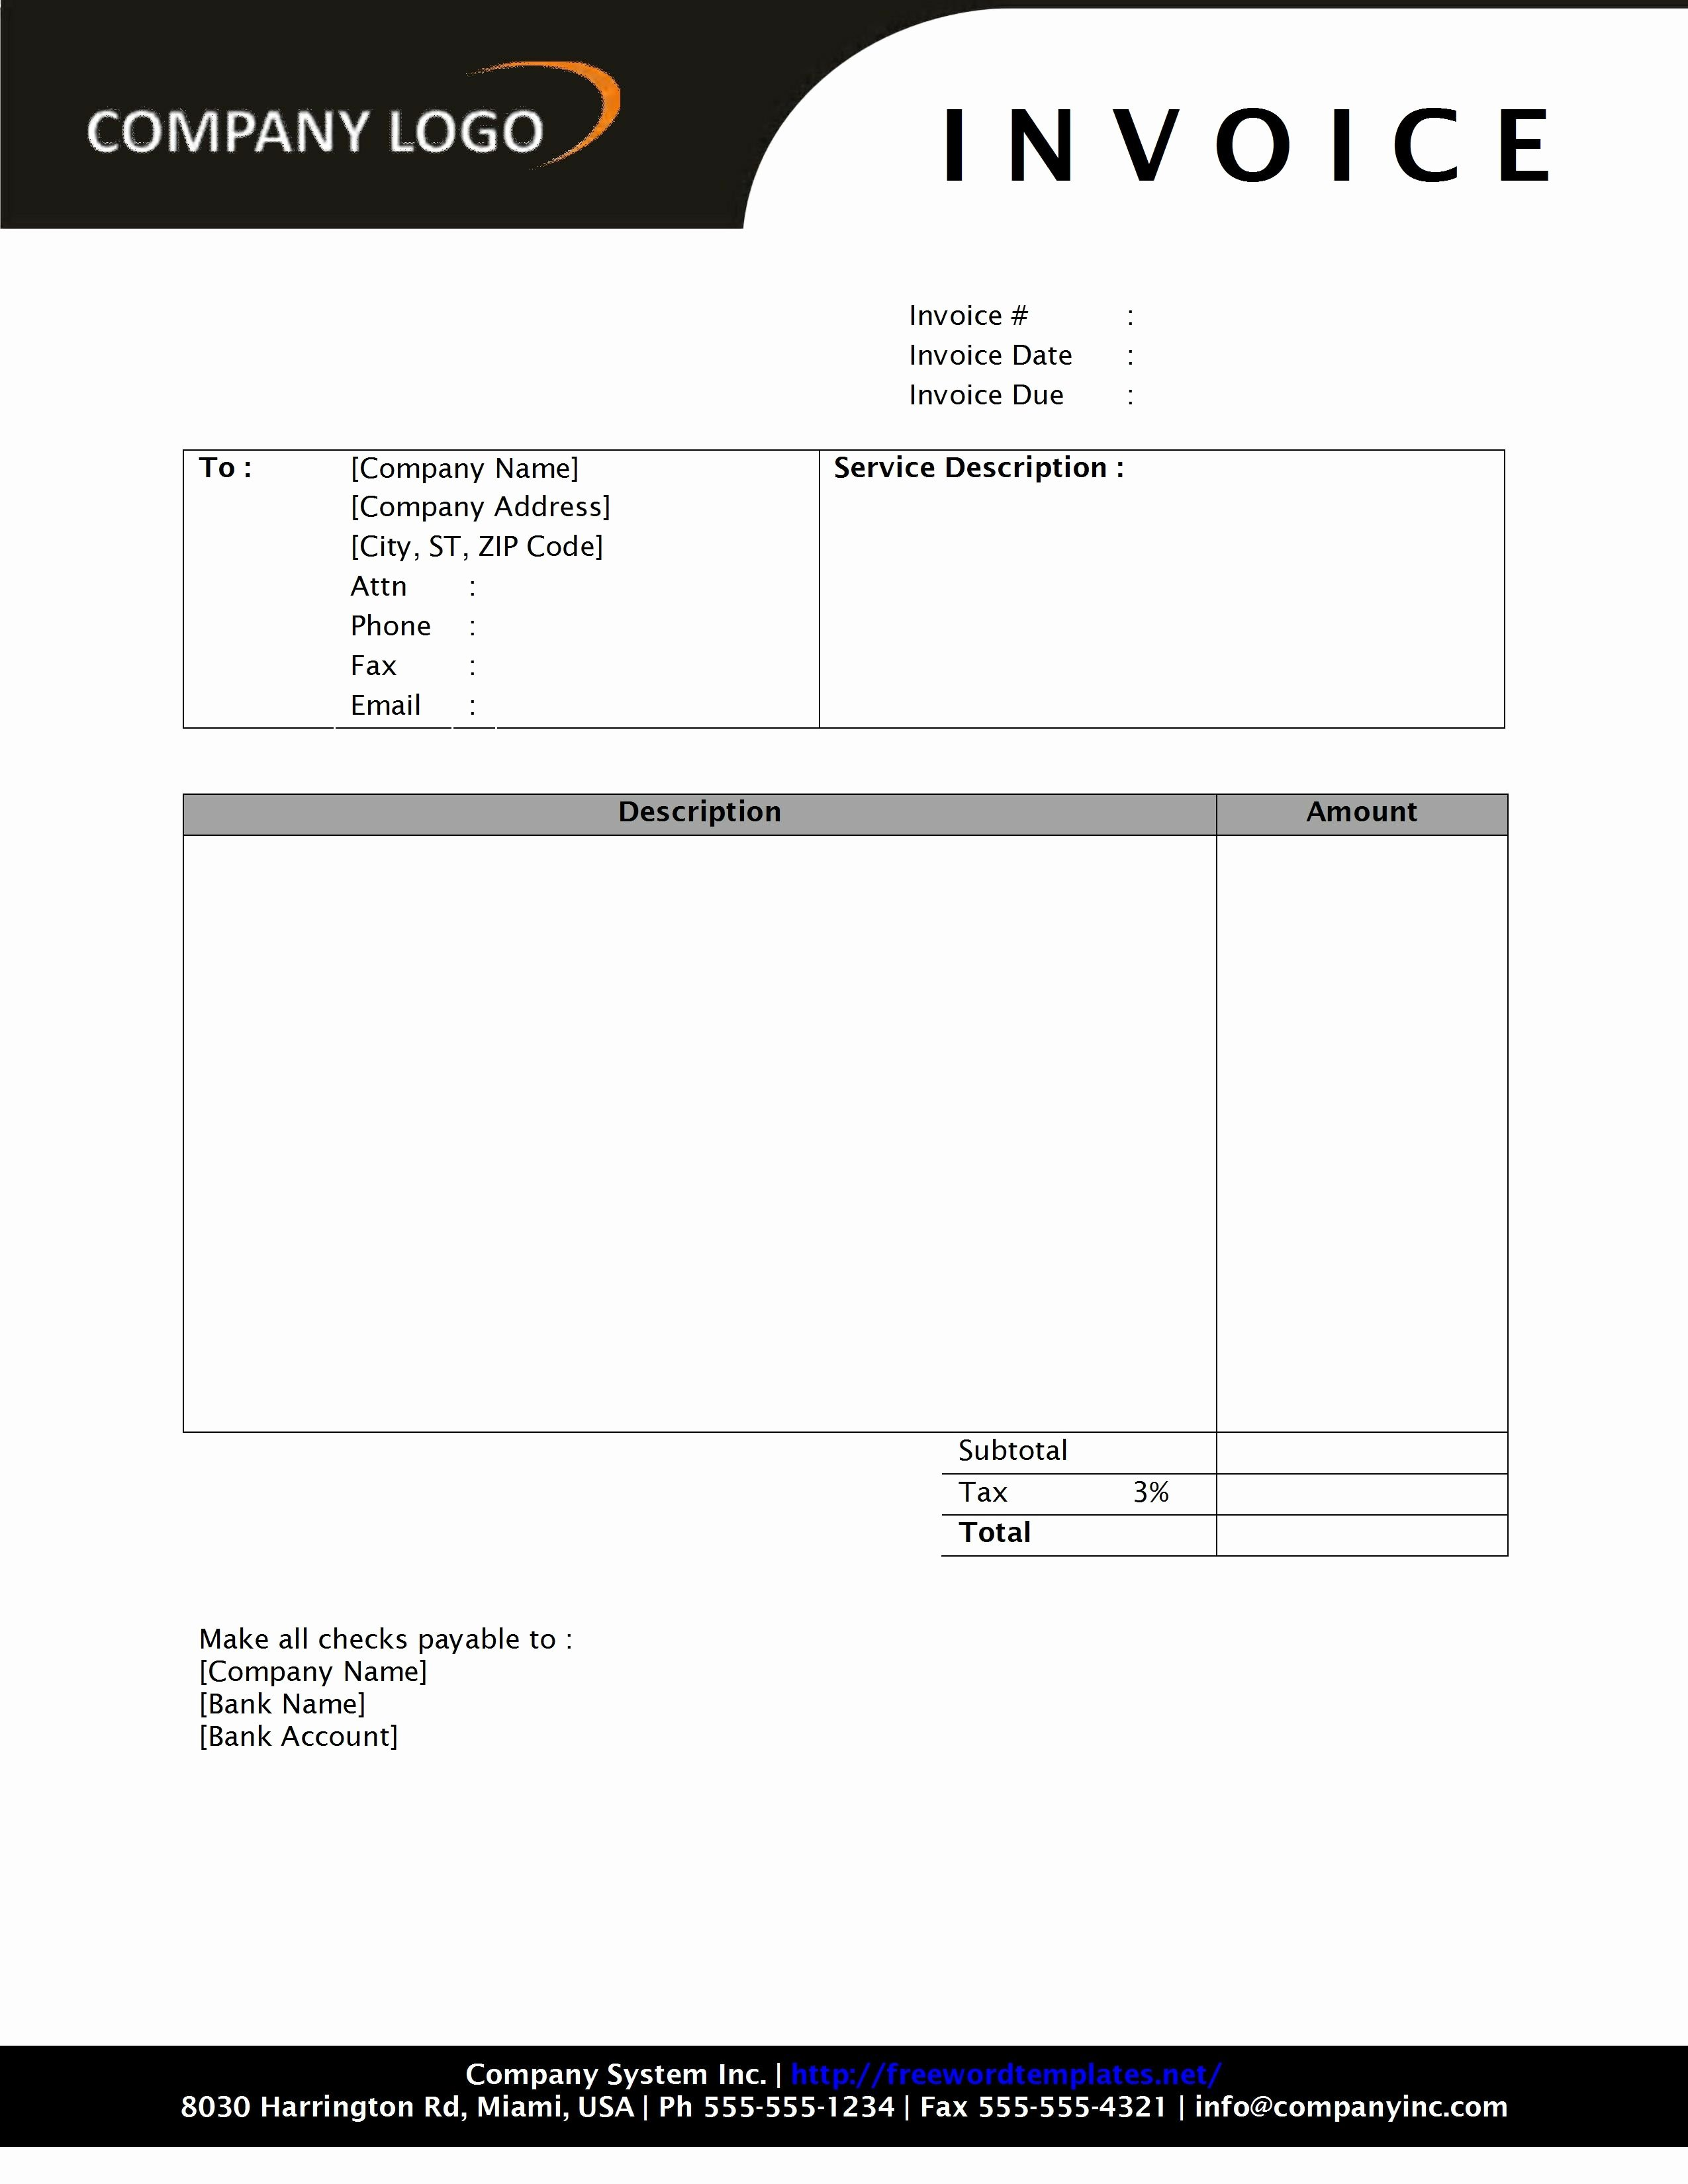 Invoice Template Word 2010